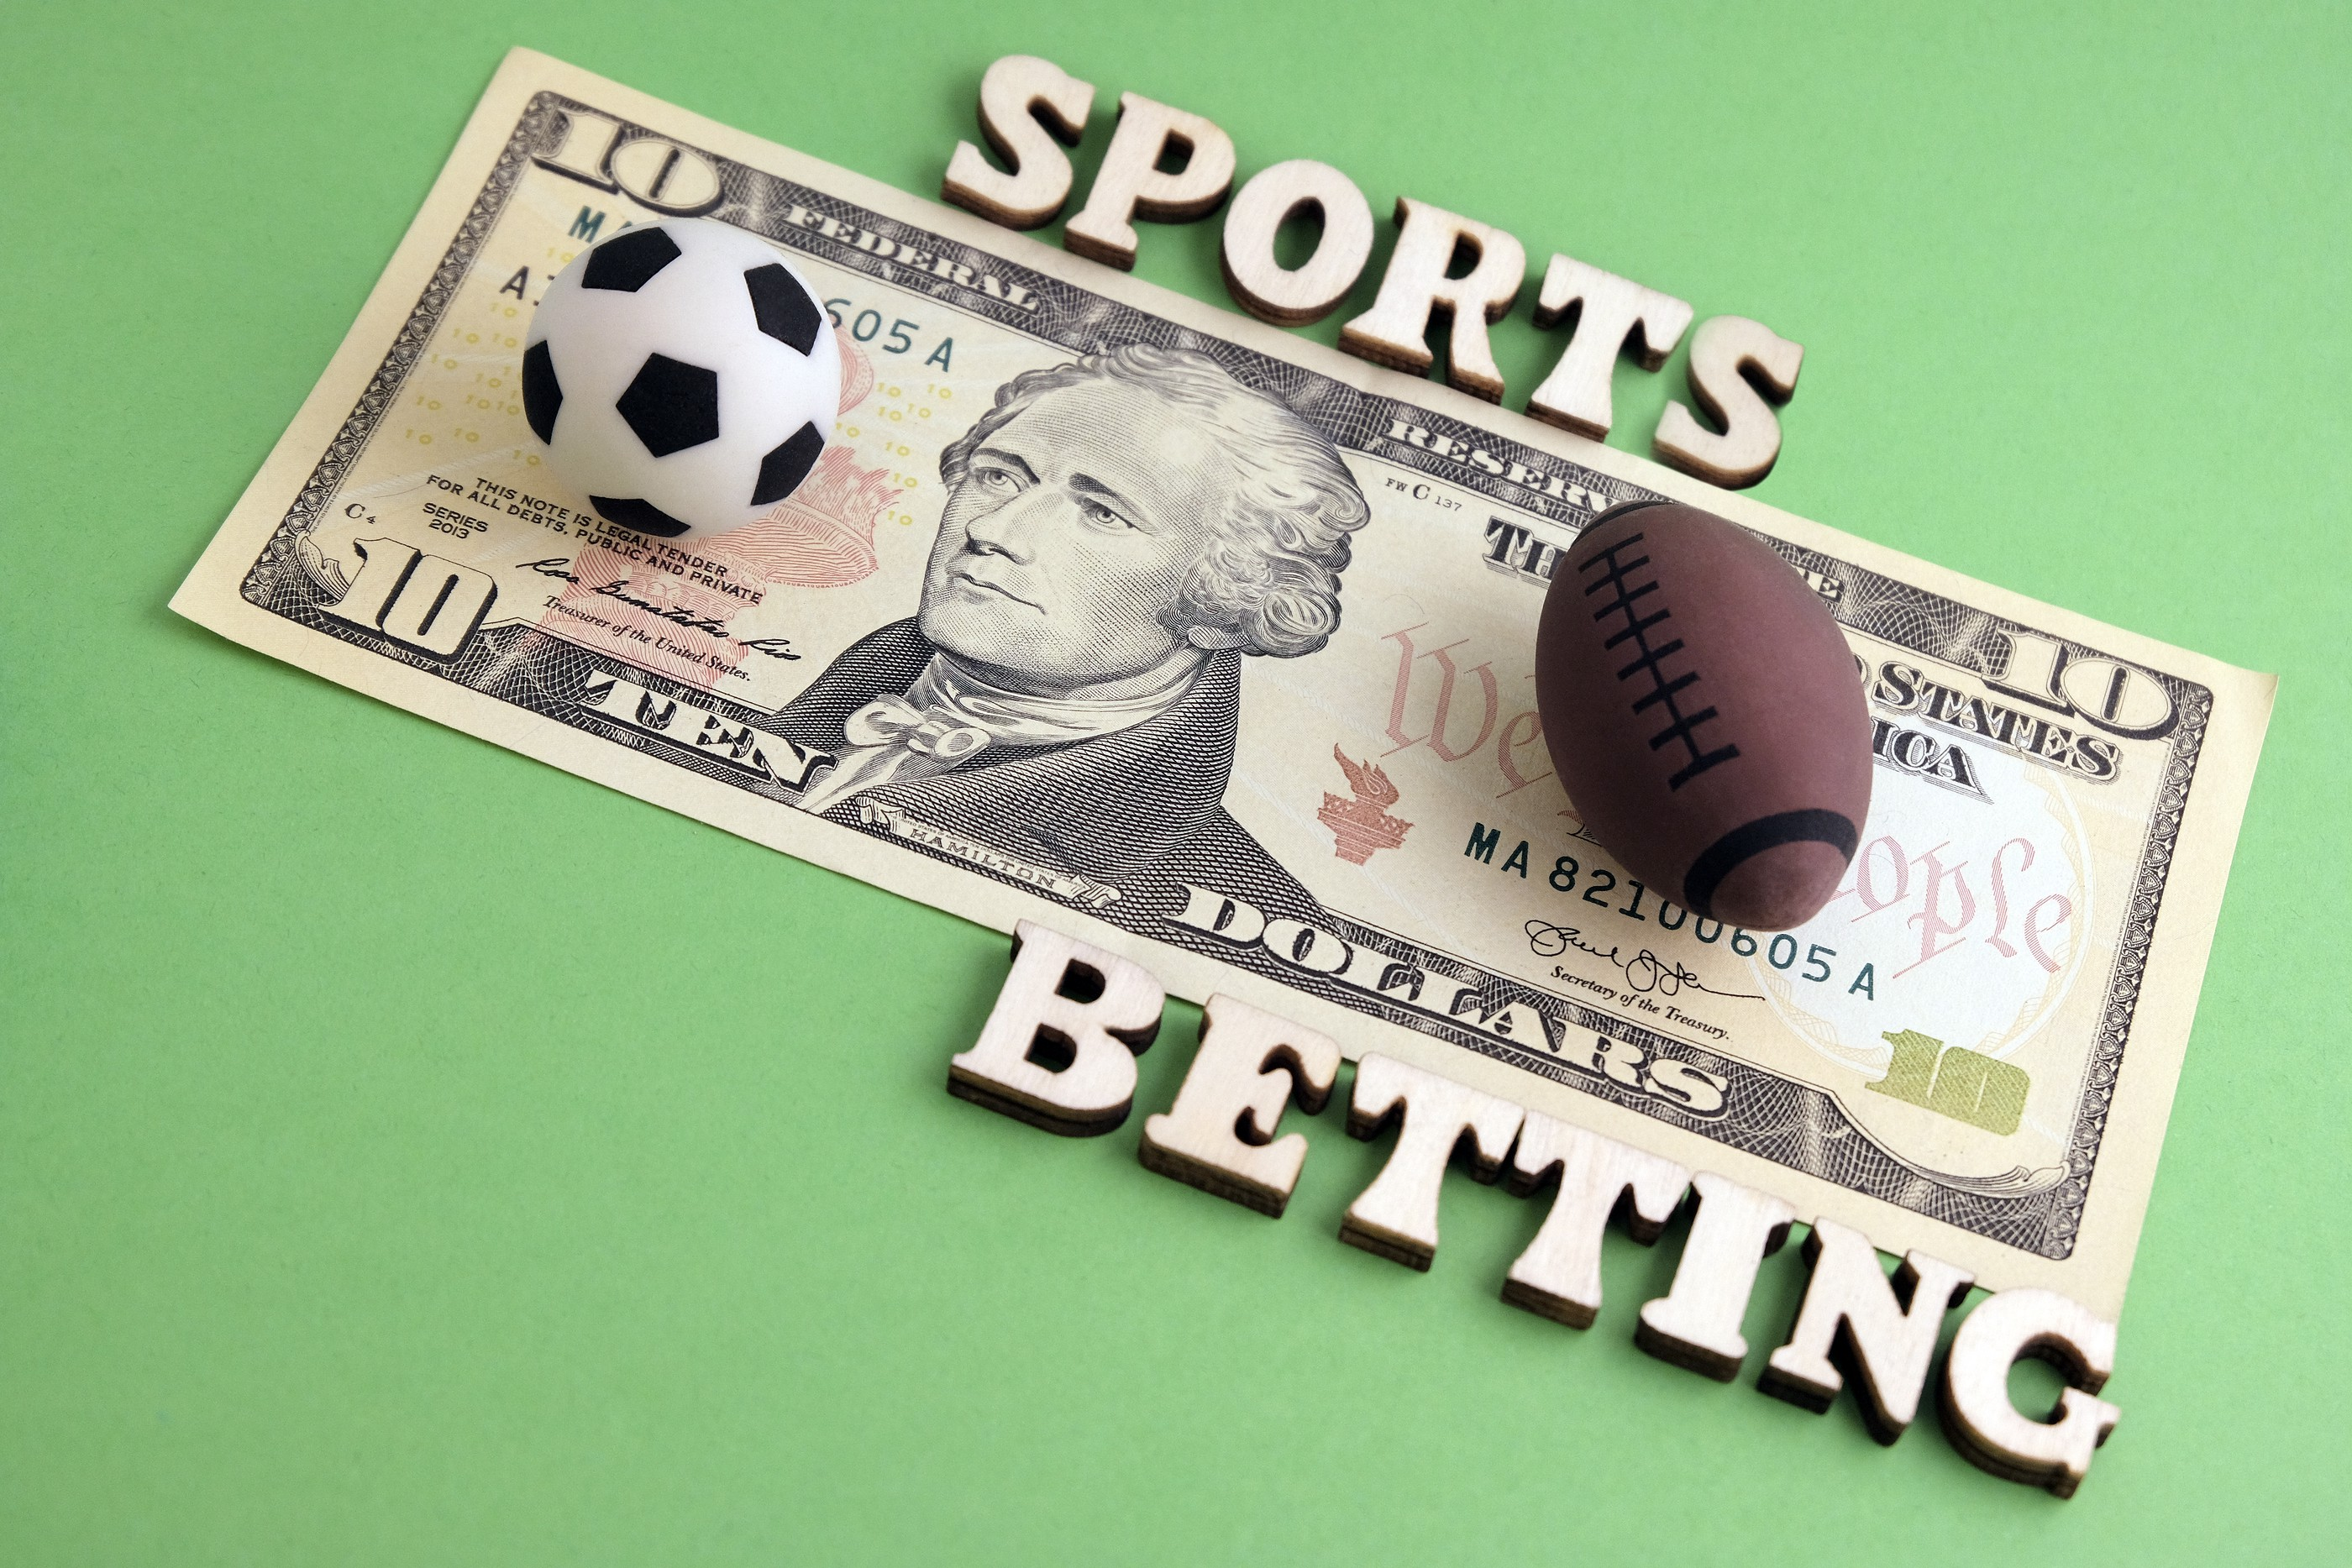 How to place a sports bet stuffed animals mod 1-3 2-4 betting system